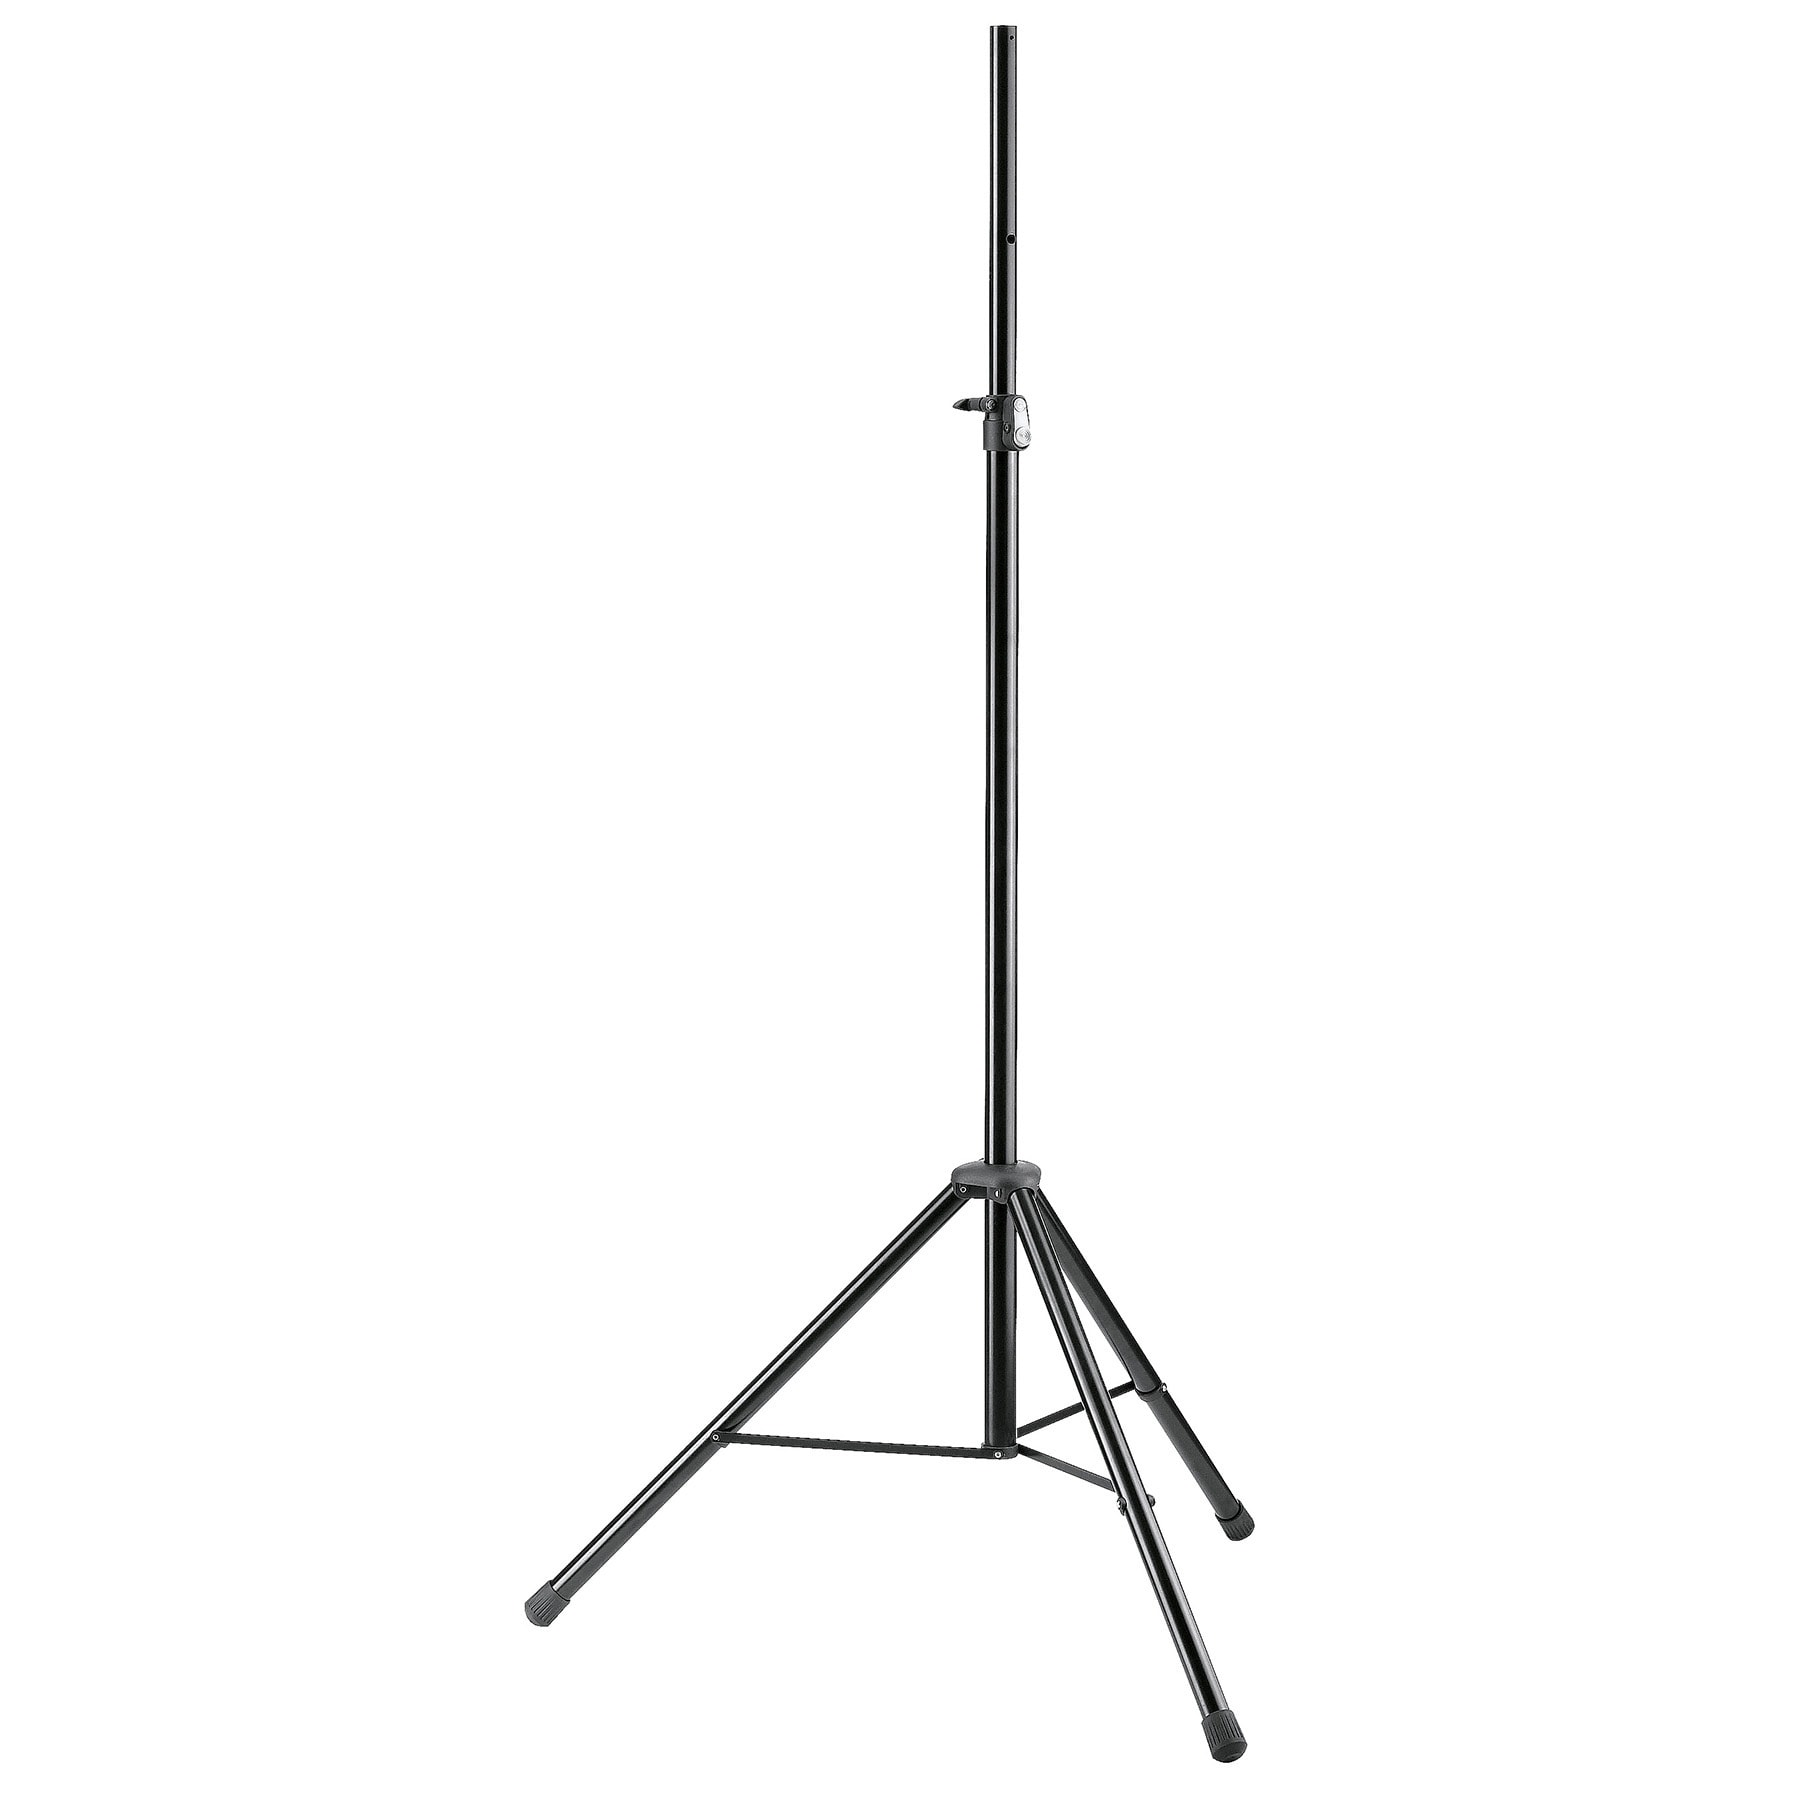 KM24630 - Lighting stand